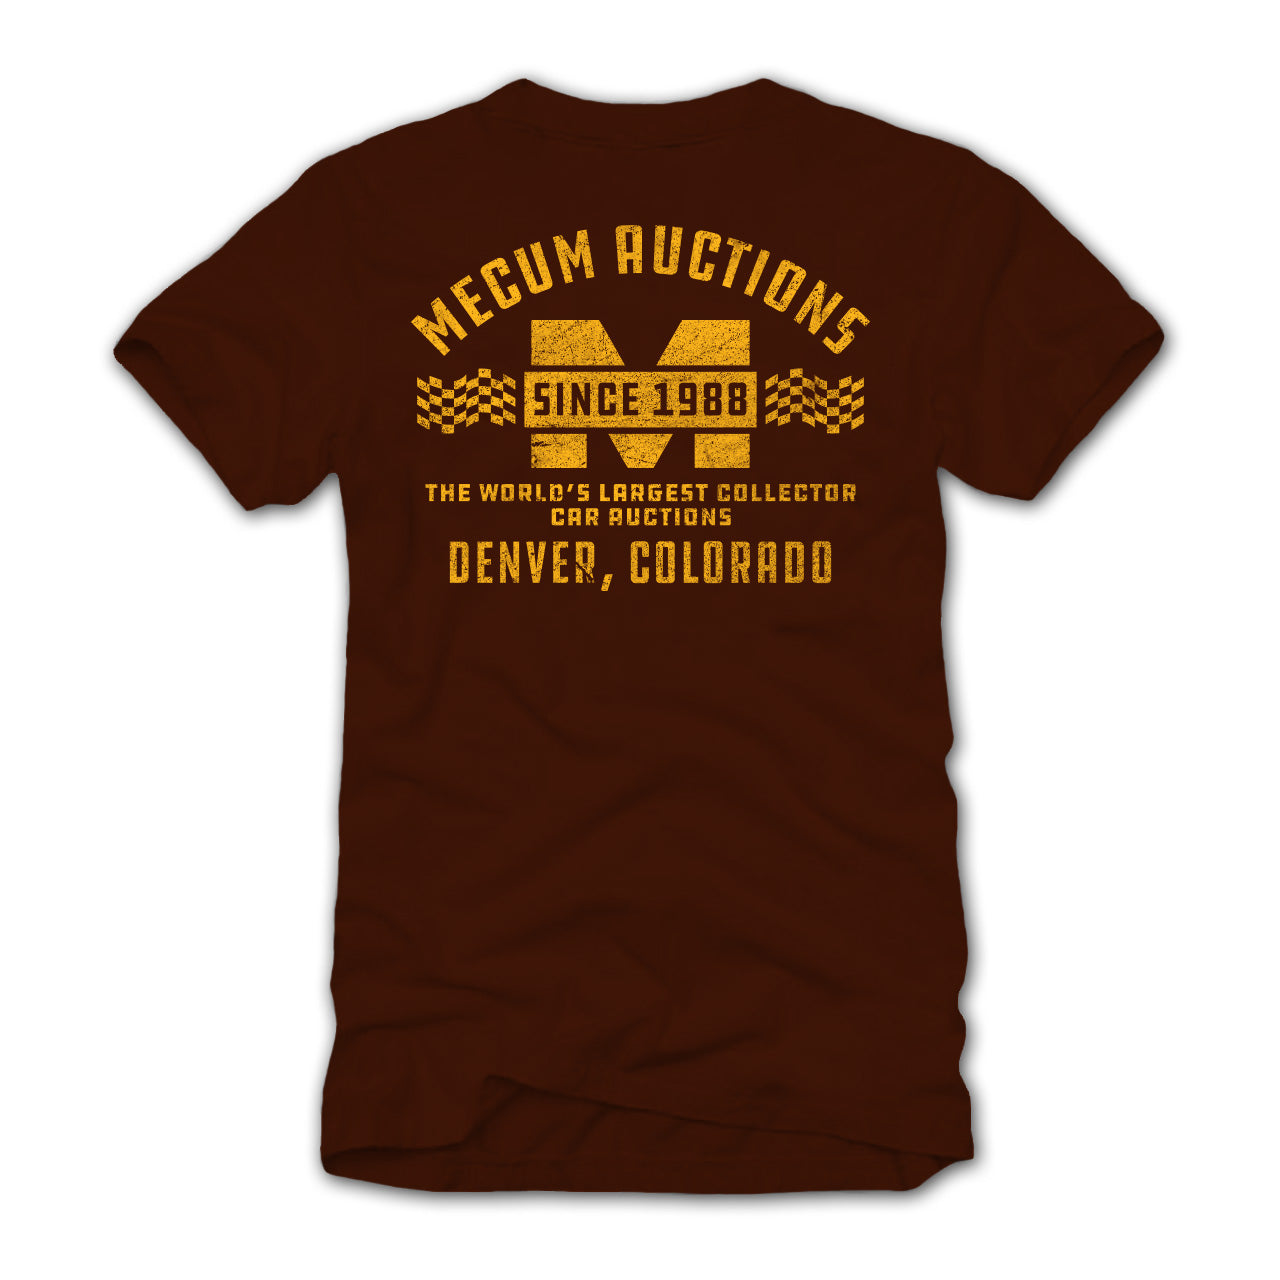 2019 Denver Name Drop T-Shirt